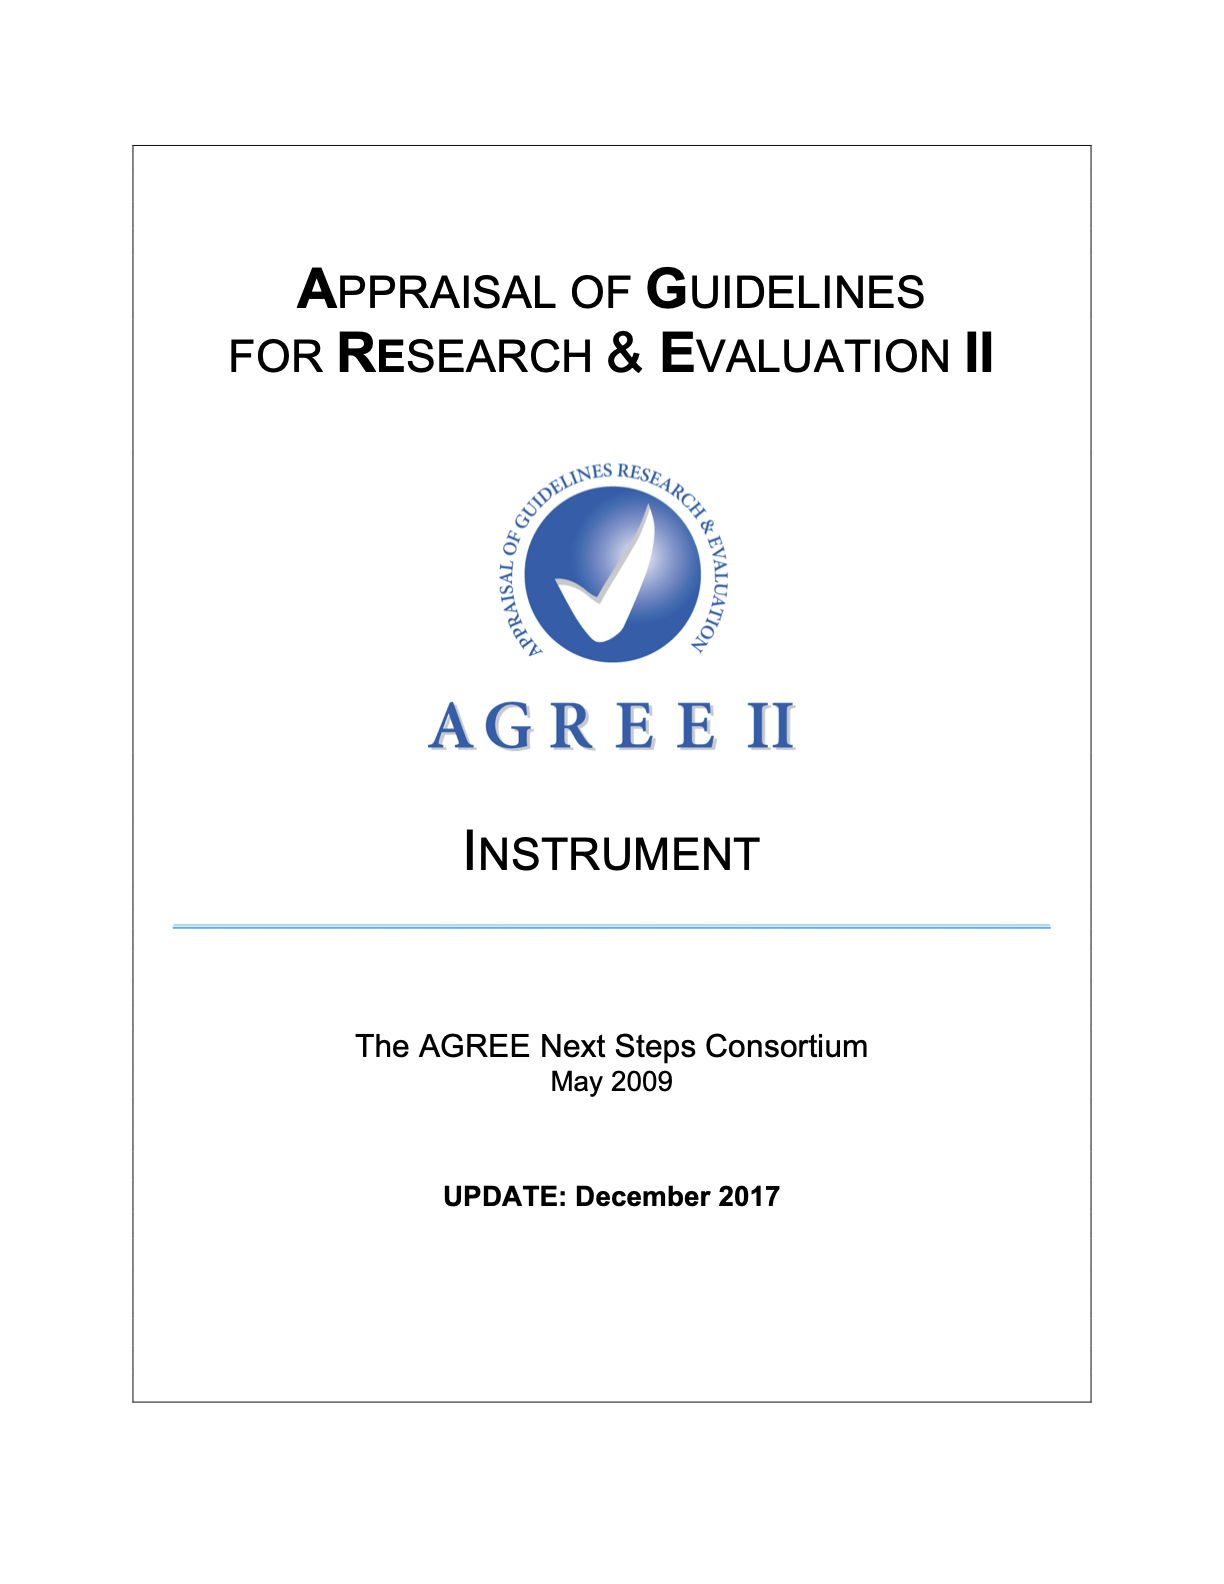 Appraisal of Guidelines for Research & Evaluation (AGREE) II Instrument